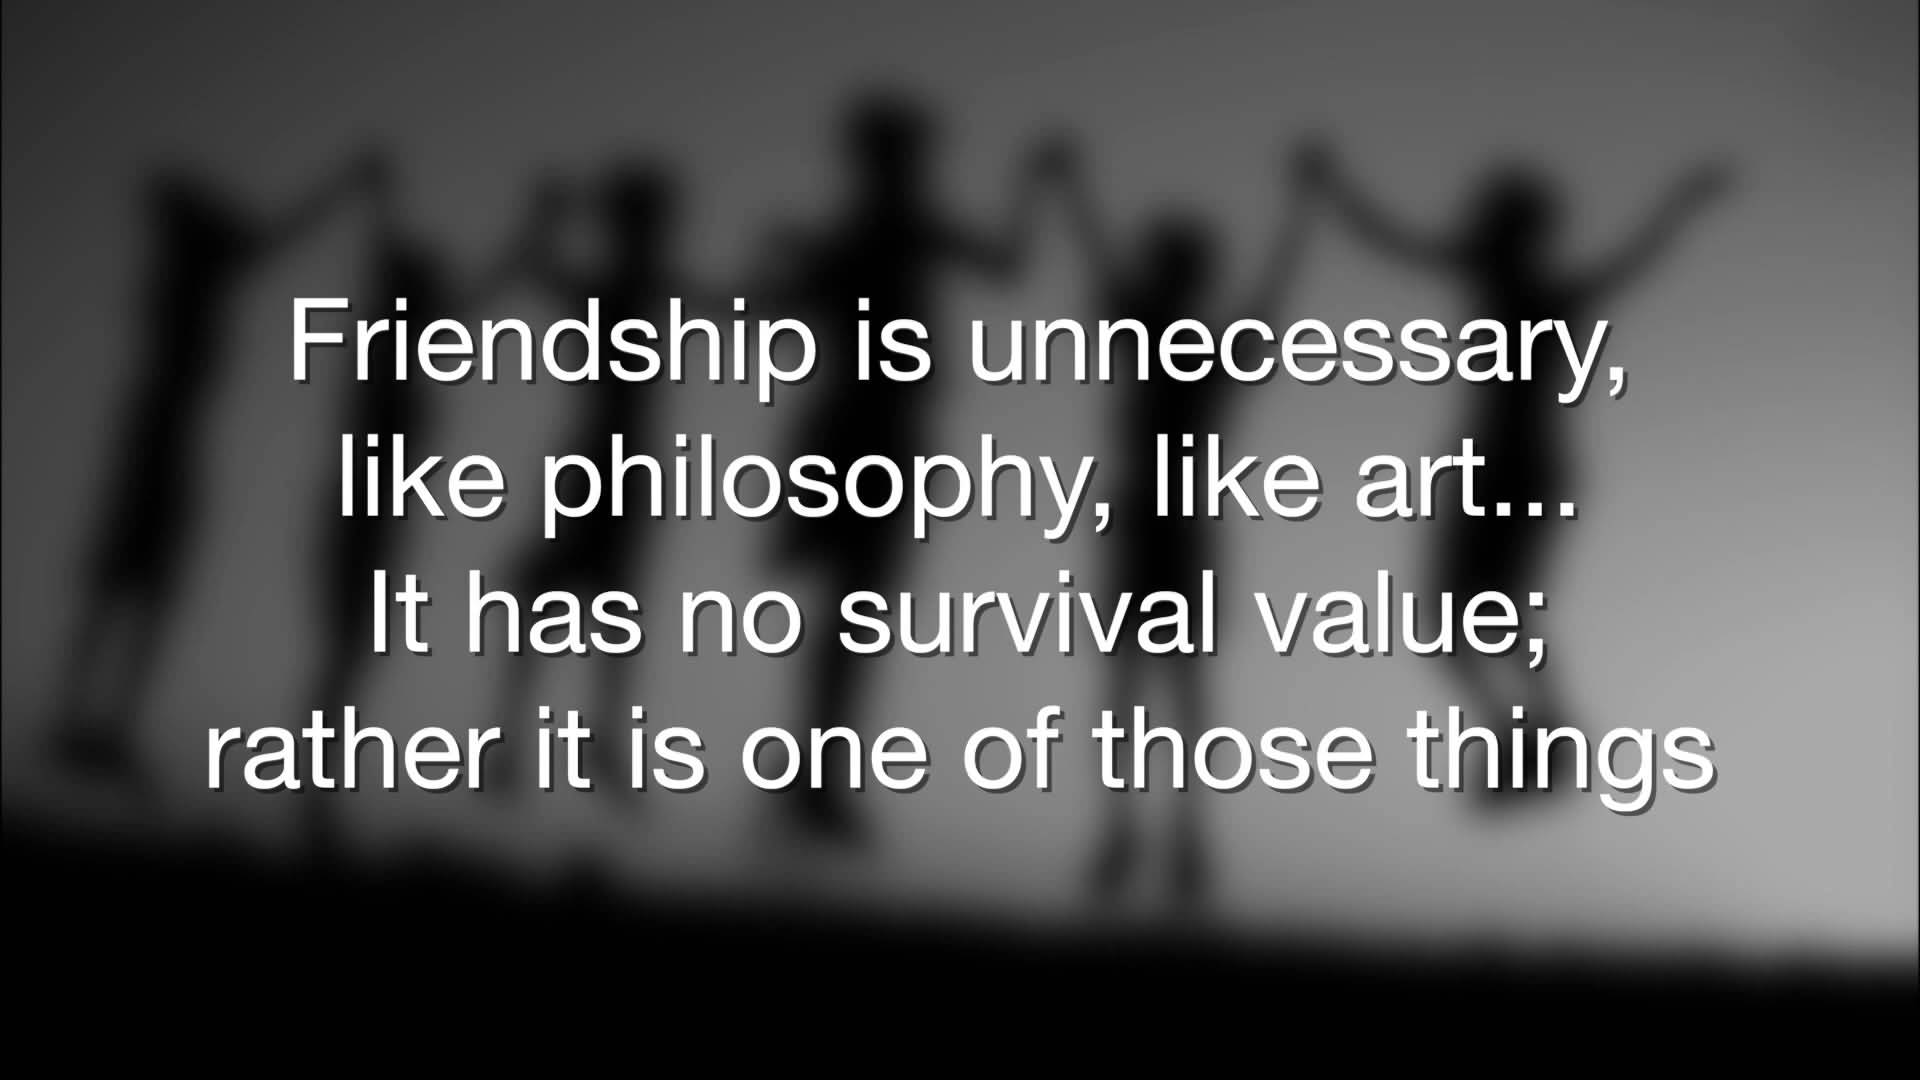 Quote About Friendships 20 Philosophical Quotes About Friendship Images & Photos  Quotesbae